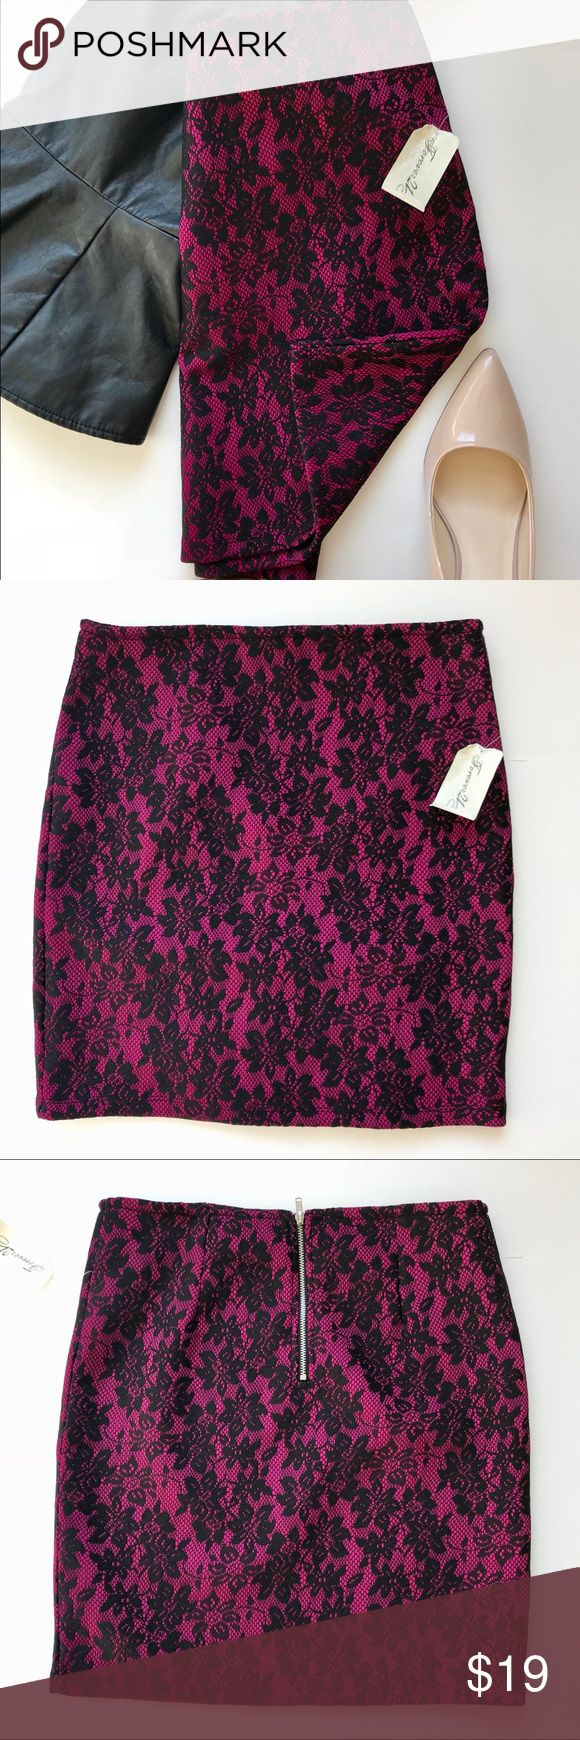 NWT Lace Mini Skirt Size Medium Forever 21 New with tags- never worn and in perfect condition. Deep pink mini skirt with black lace overlay in size medium. Would best fit a 6 or 8. From Forever 21. Thick fabric holds you in and sculpts a flattering silhouette. Has some stretch but not too much, just enough for comfortable wear. Can be worn mid or high rise. Pairs beautifully with black peplum top pictured, also for sale in my closet. Perfect for upcoming holiday party season. Measurements…